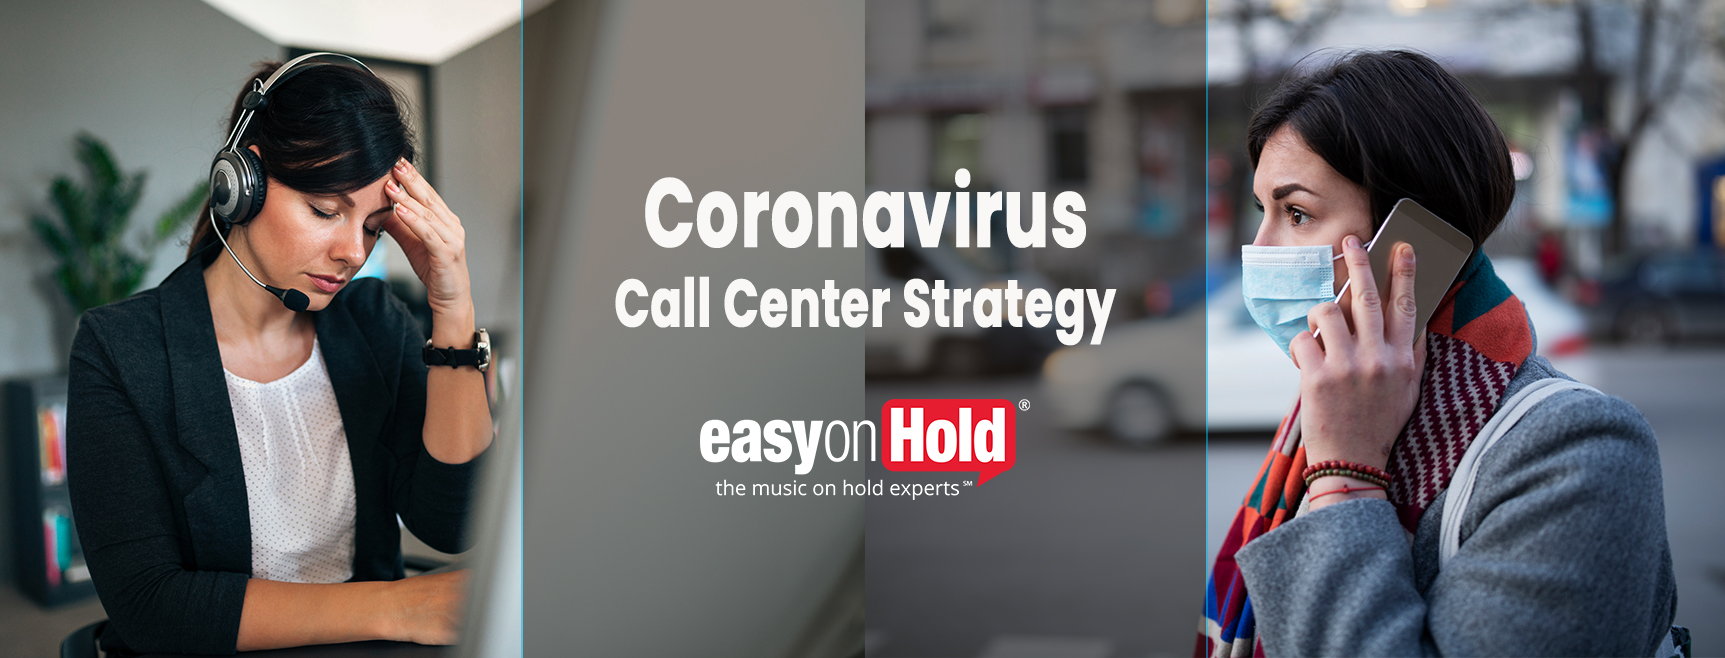 coronavirus call center strategy